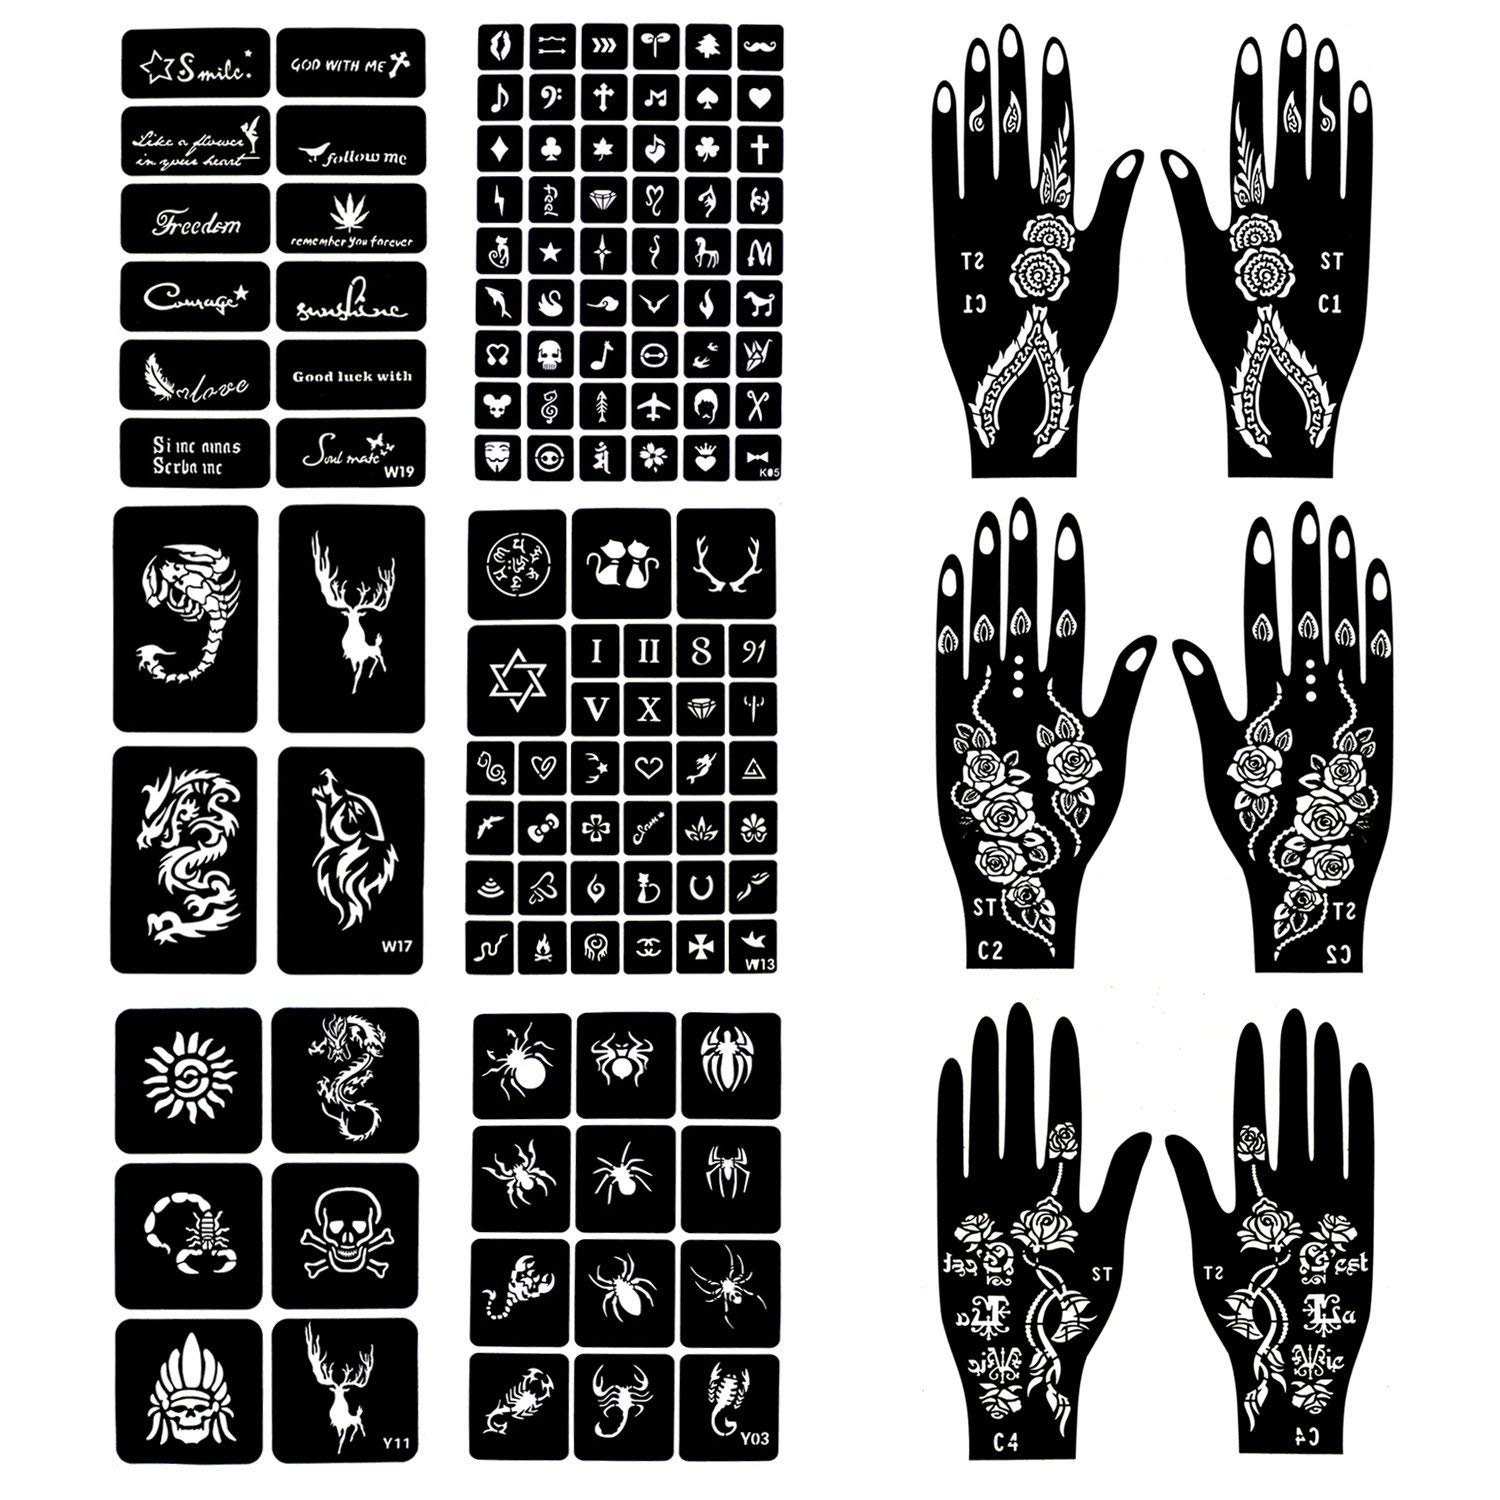 12 Sheets Stencils for Henna Tattoos Self-Adhesive Beautiful Body Art Temporary Tattoo Templates, Henna, Flower, Butterfly Designs, Scorpion, Spider, Dragon